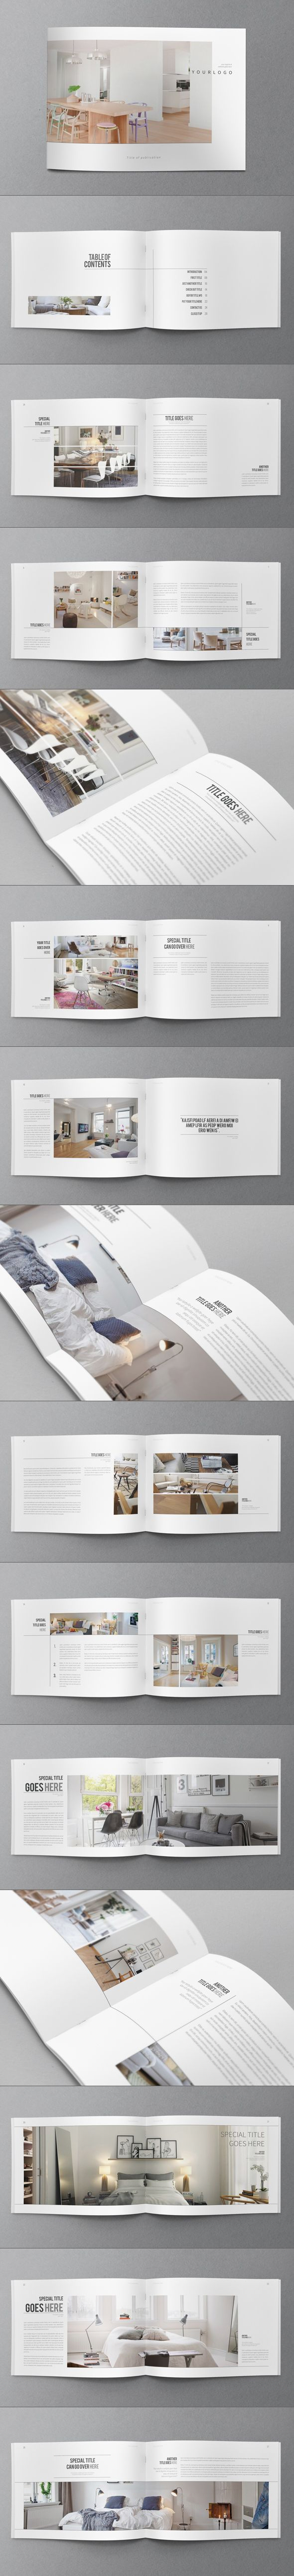 Minimal Interior Design Brochure on Behance